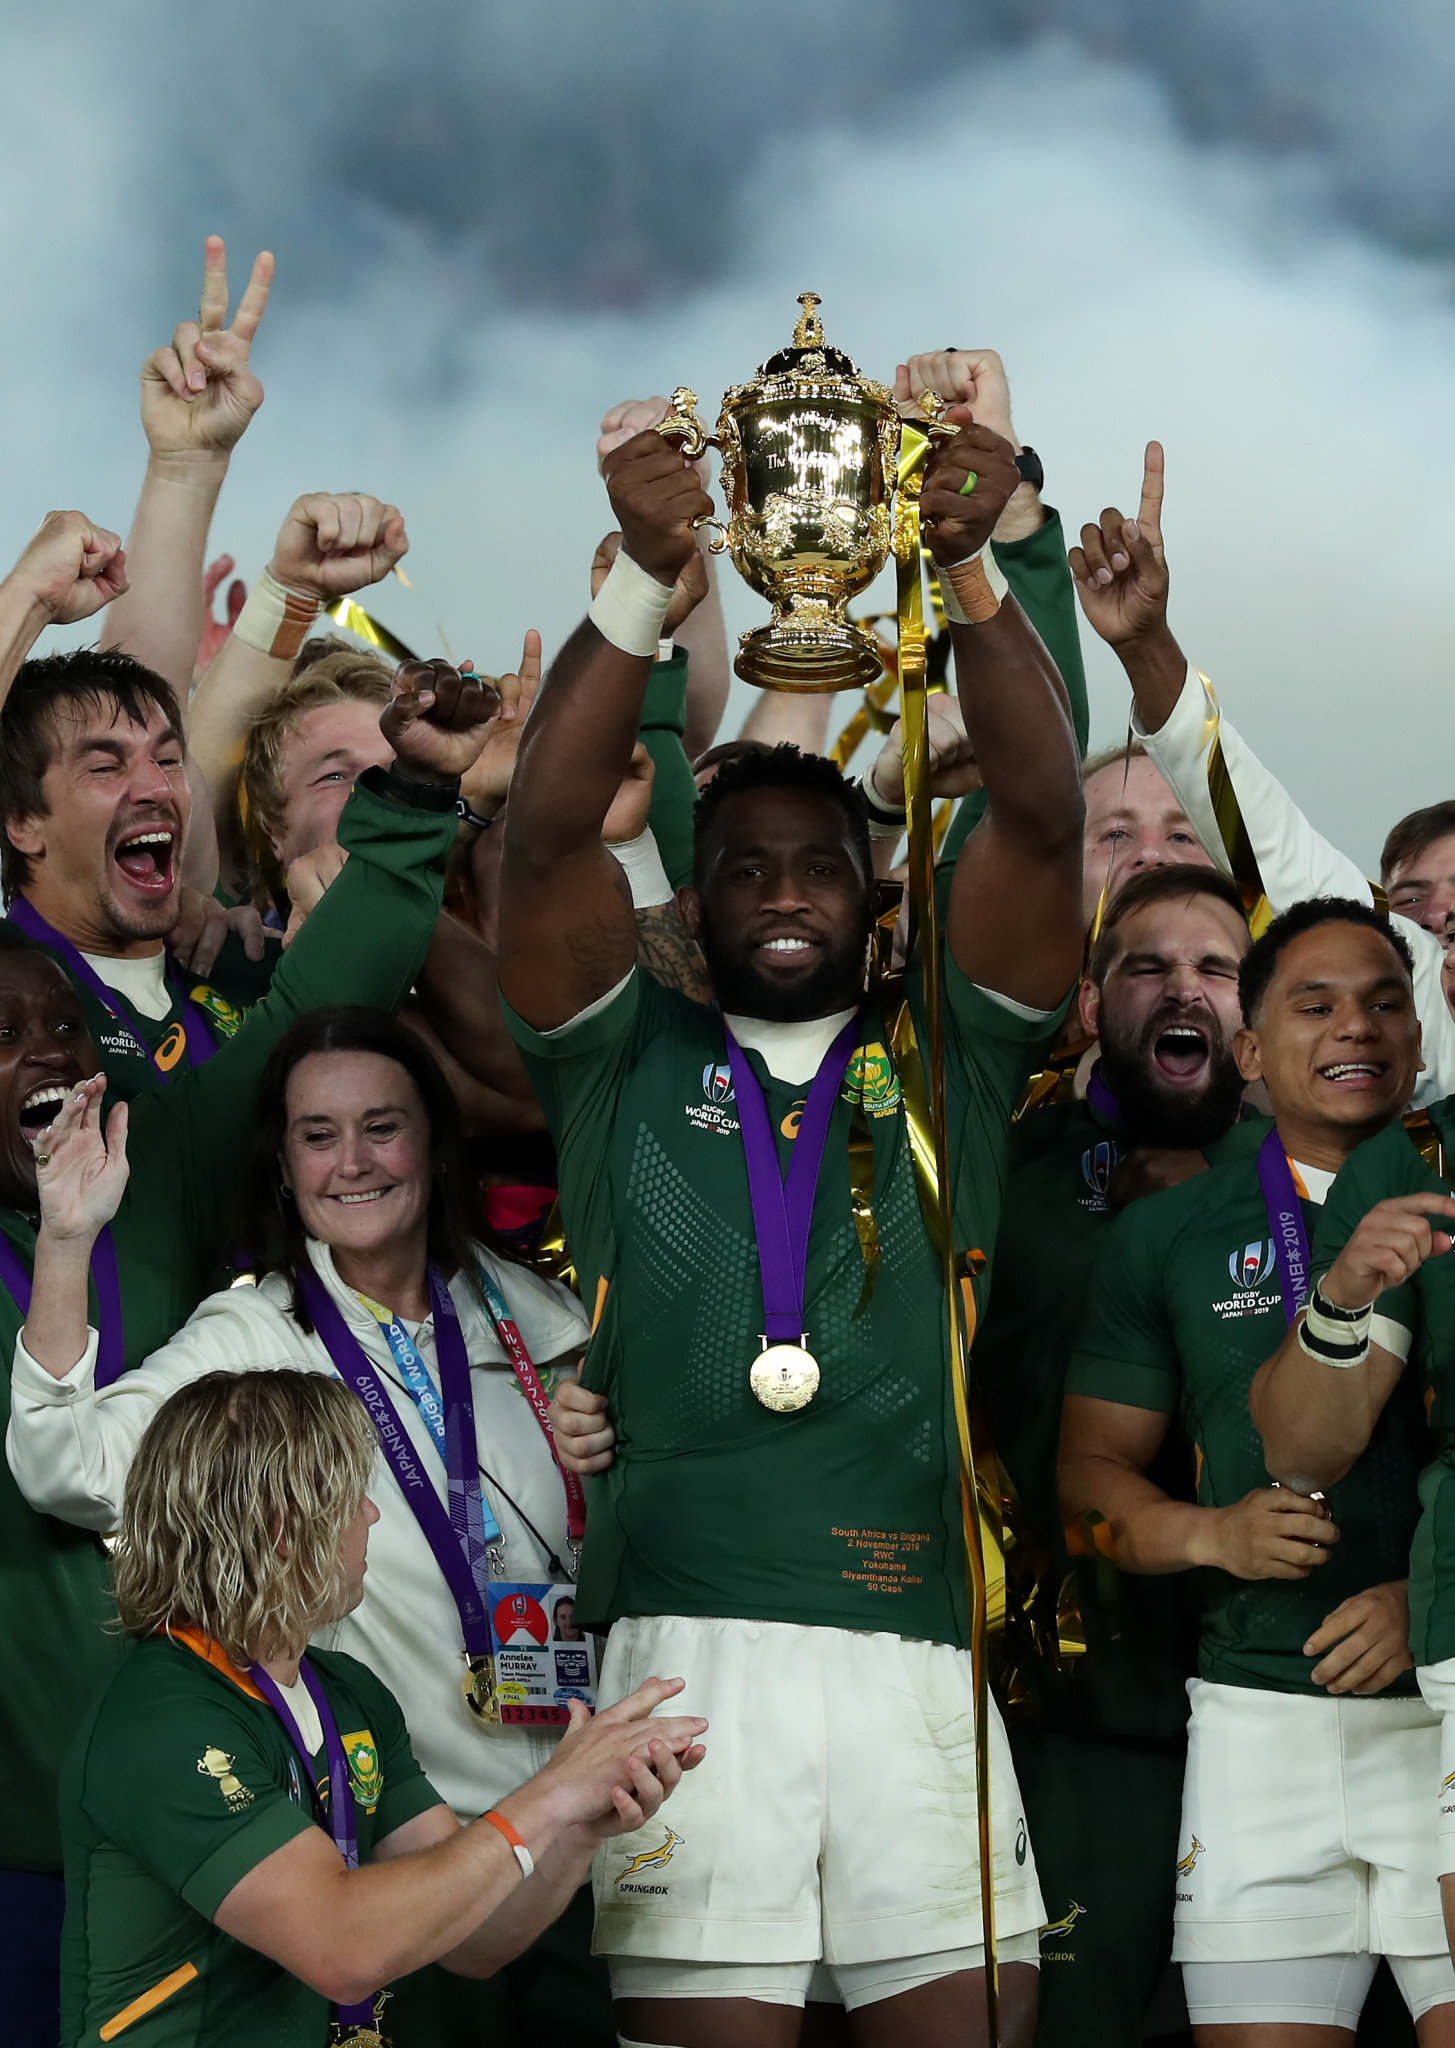 Kolisi hopeful South Africa's Rugby World Cup triumph will inspire kids back home